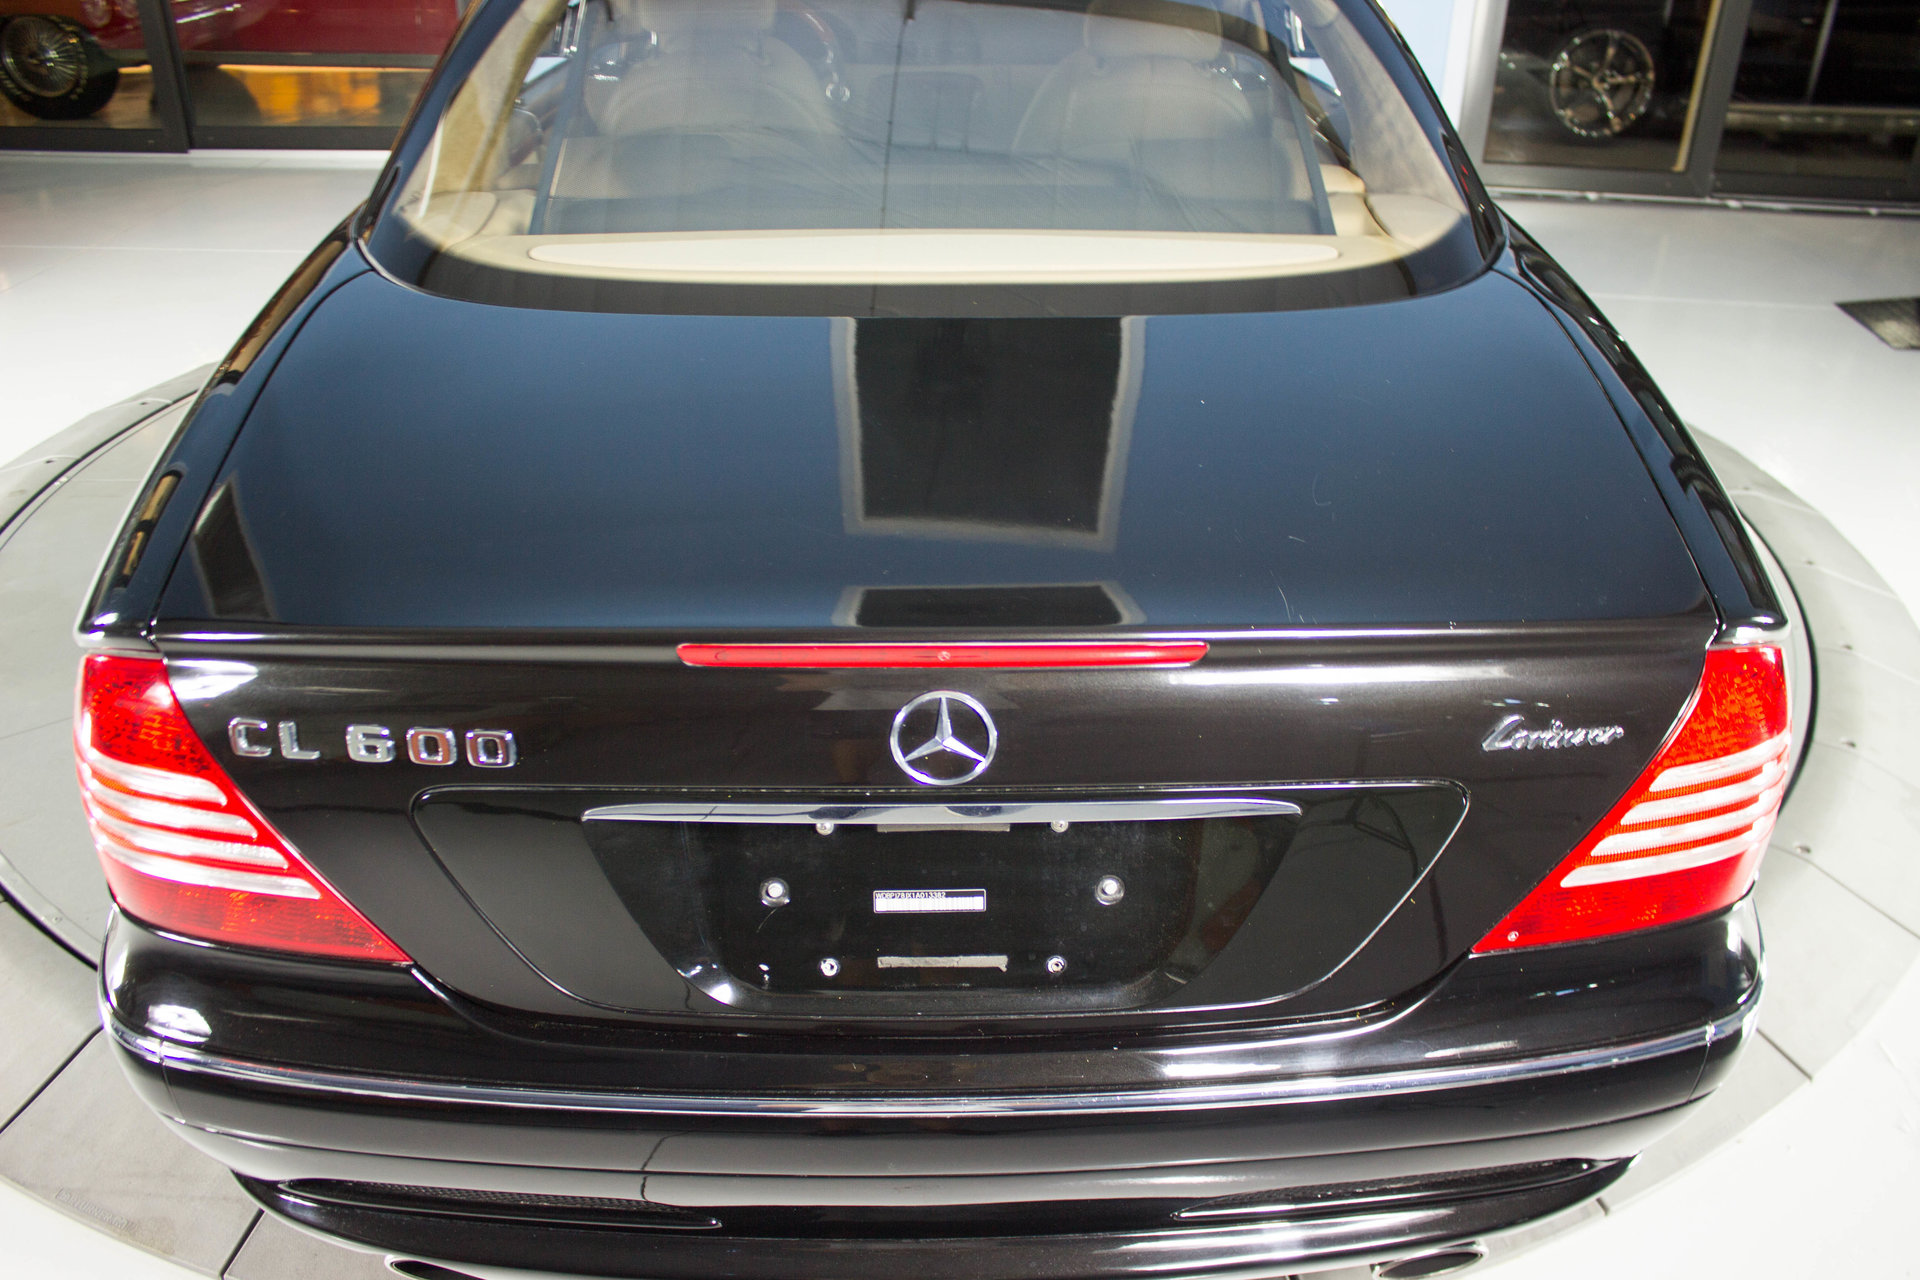 2001 mercedes benz cl 600 classic cars used cars for sale in tampa fl. Black Bedroom Furniture Sets. Home Design Ideas